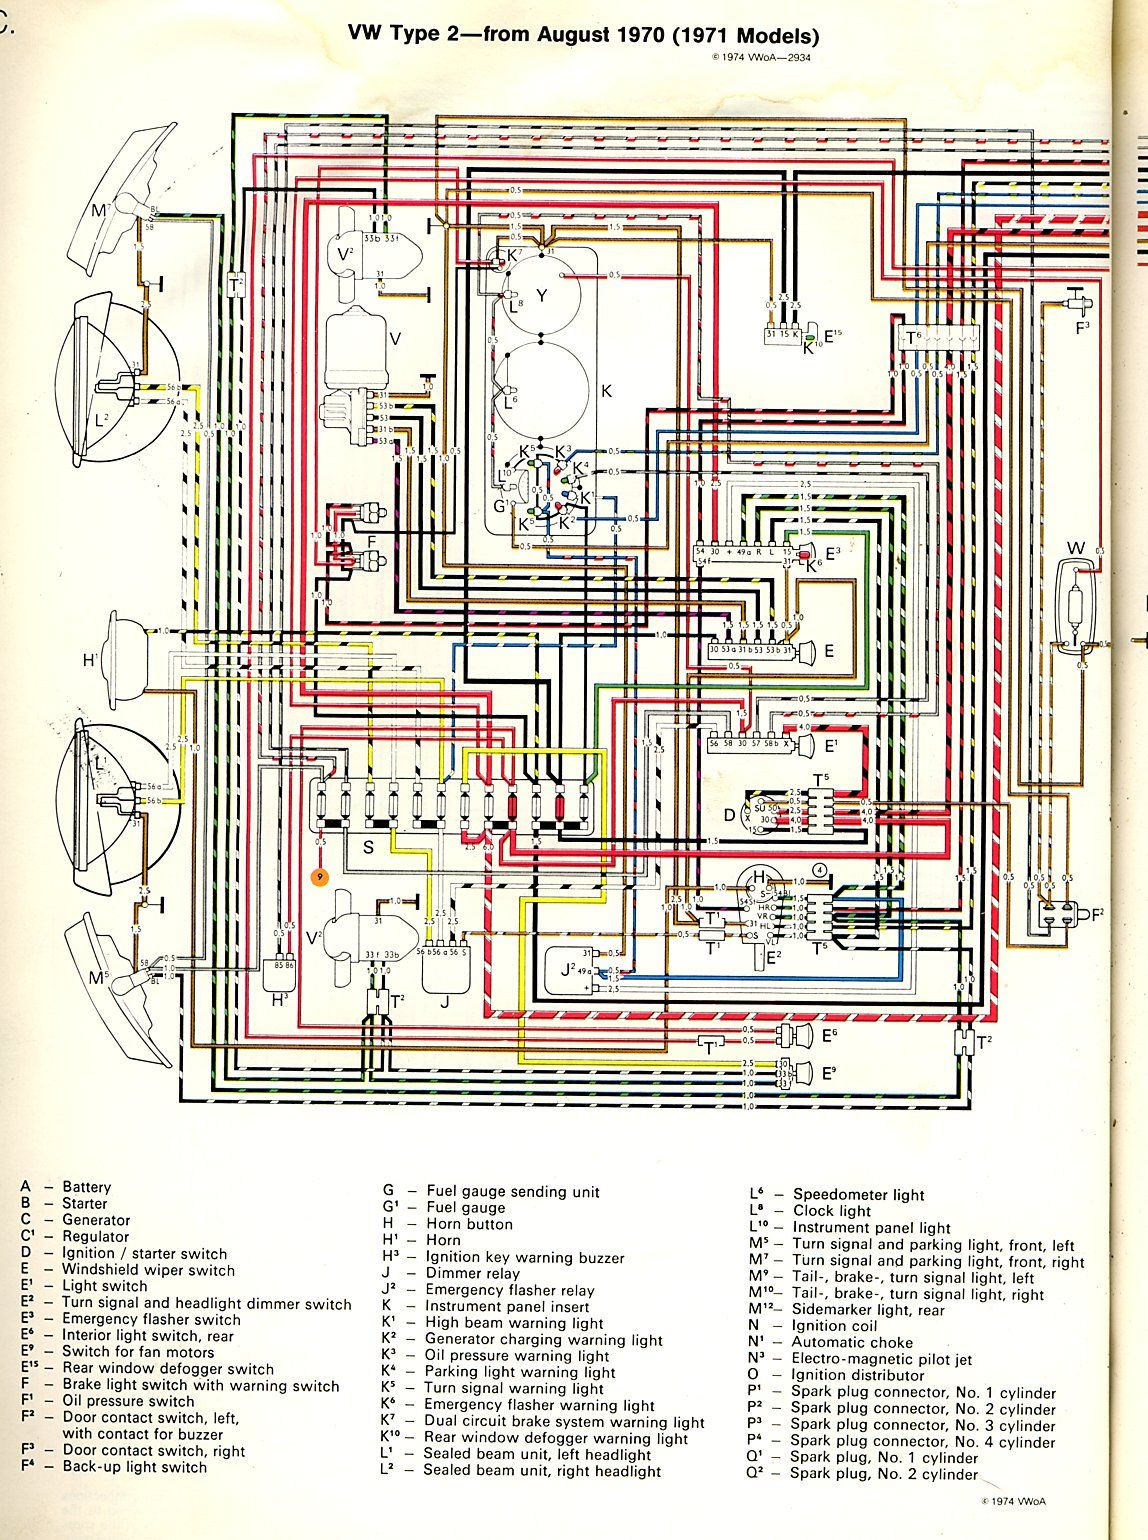 26730f3f6ceb3f1e1b50646c57249616 1971 bus wiring diagram thegoldenbug com stuff to try 72 vw bus wiring diagram at alyssarenee.co